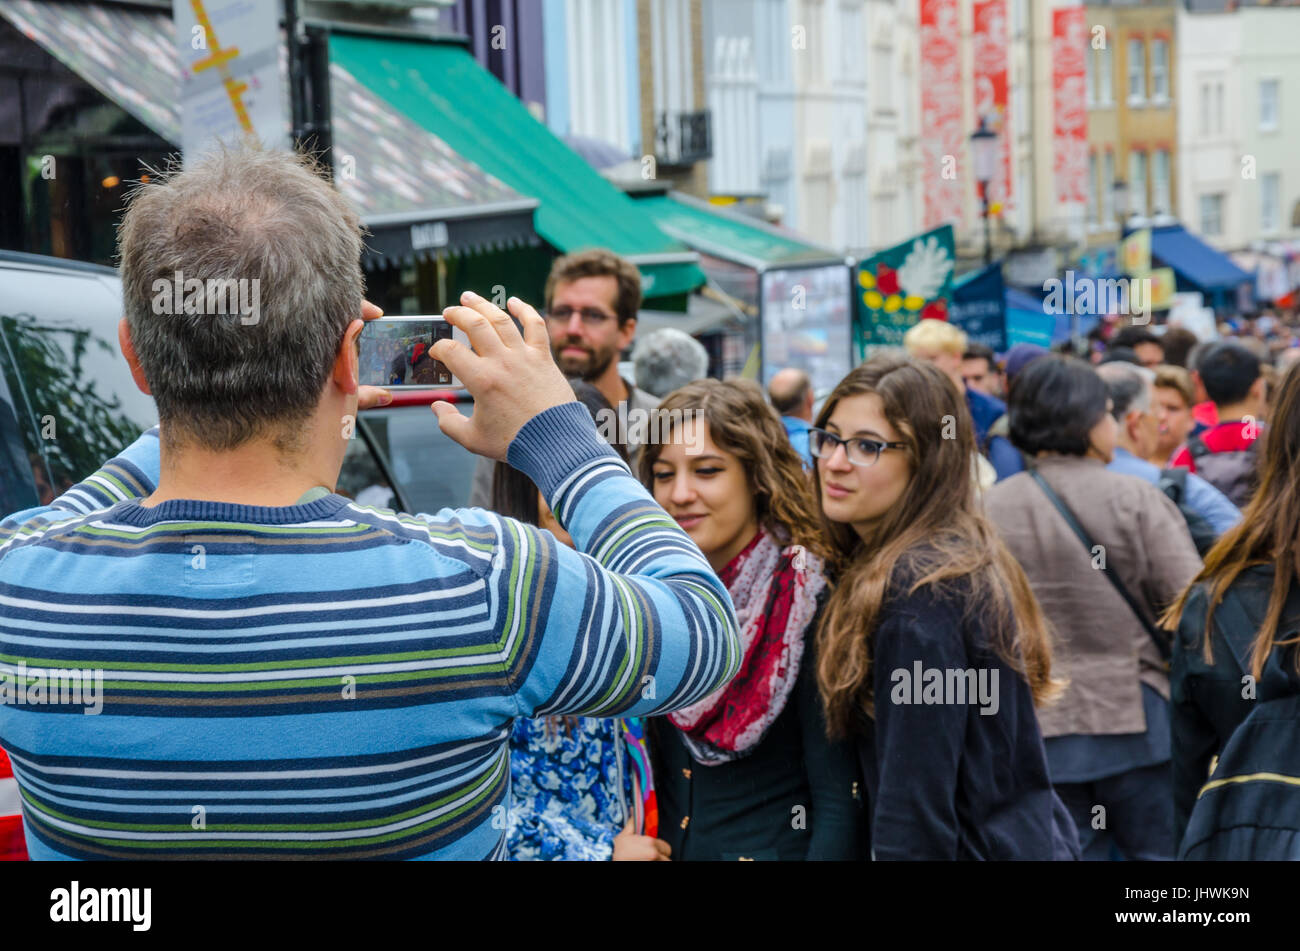 A family pose for a selfie taken on a mobile phone on Portobello Road in Notting Hill, London. - Stock Image